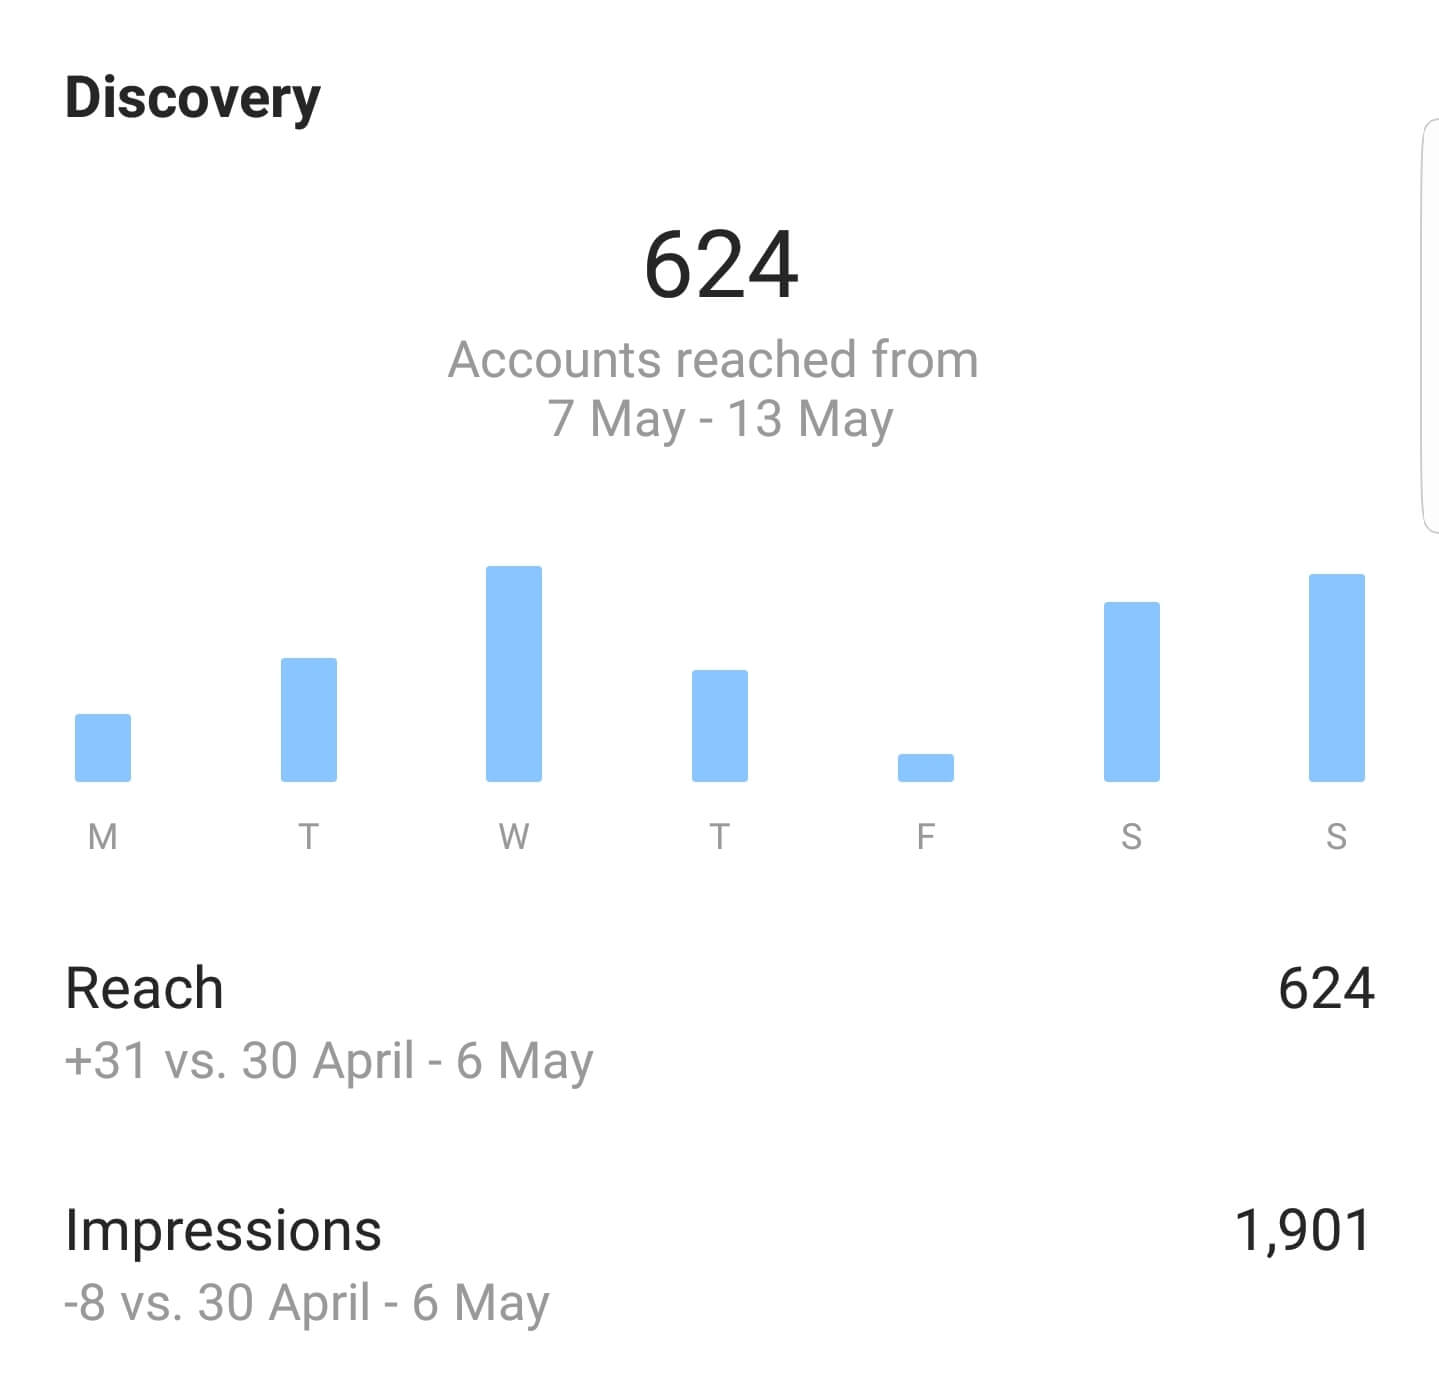 Instagram Insights: Discovery